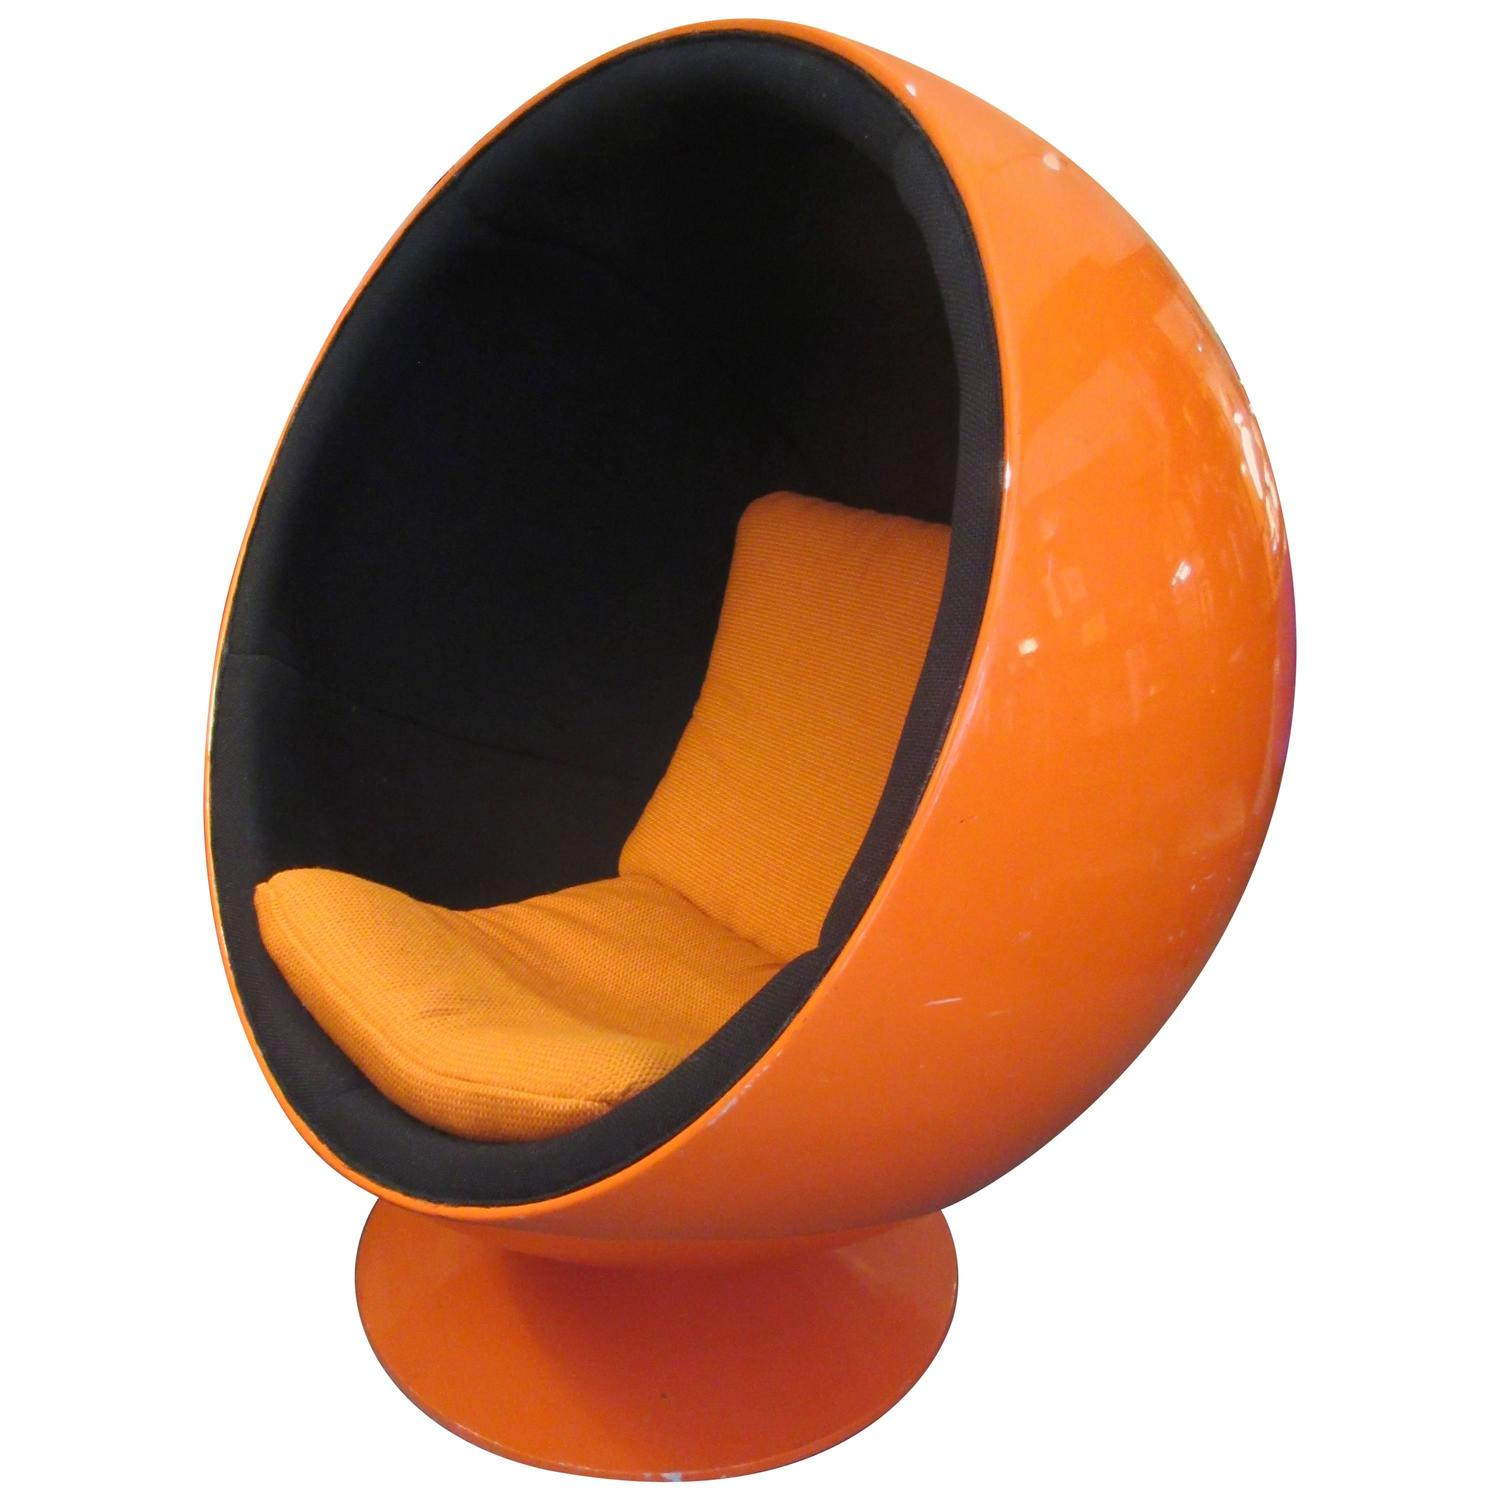 eero aarnio ball chair by asko lahti at 1stdibs. Black Bedroom Furniture Sets. Home Design Ideas